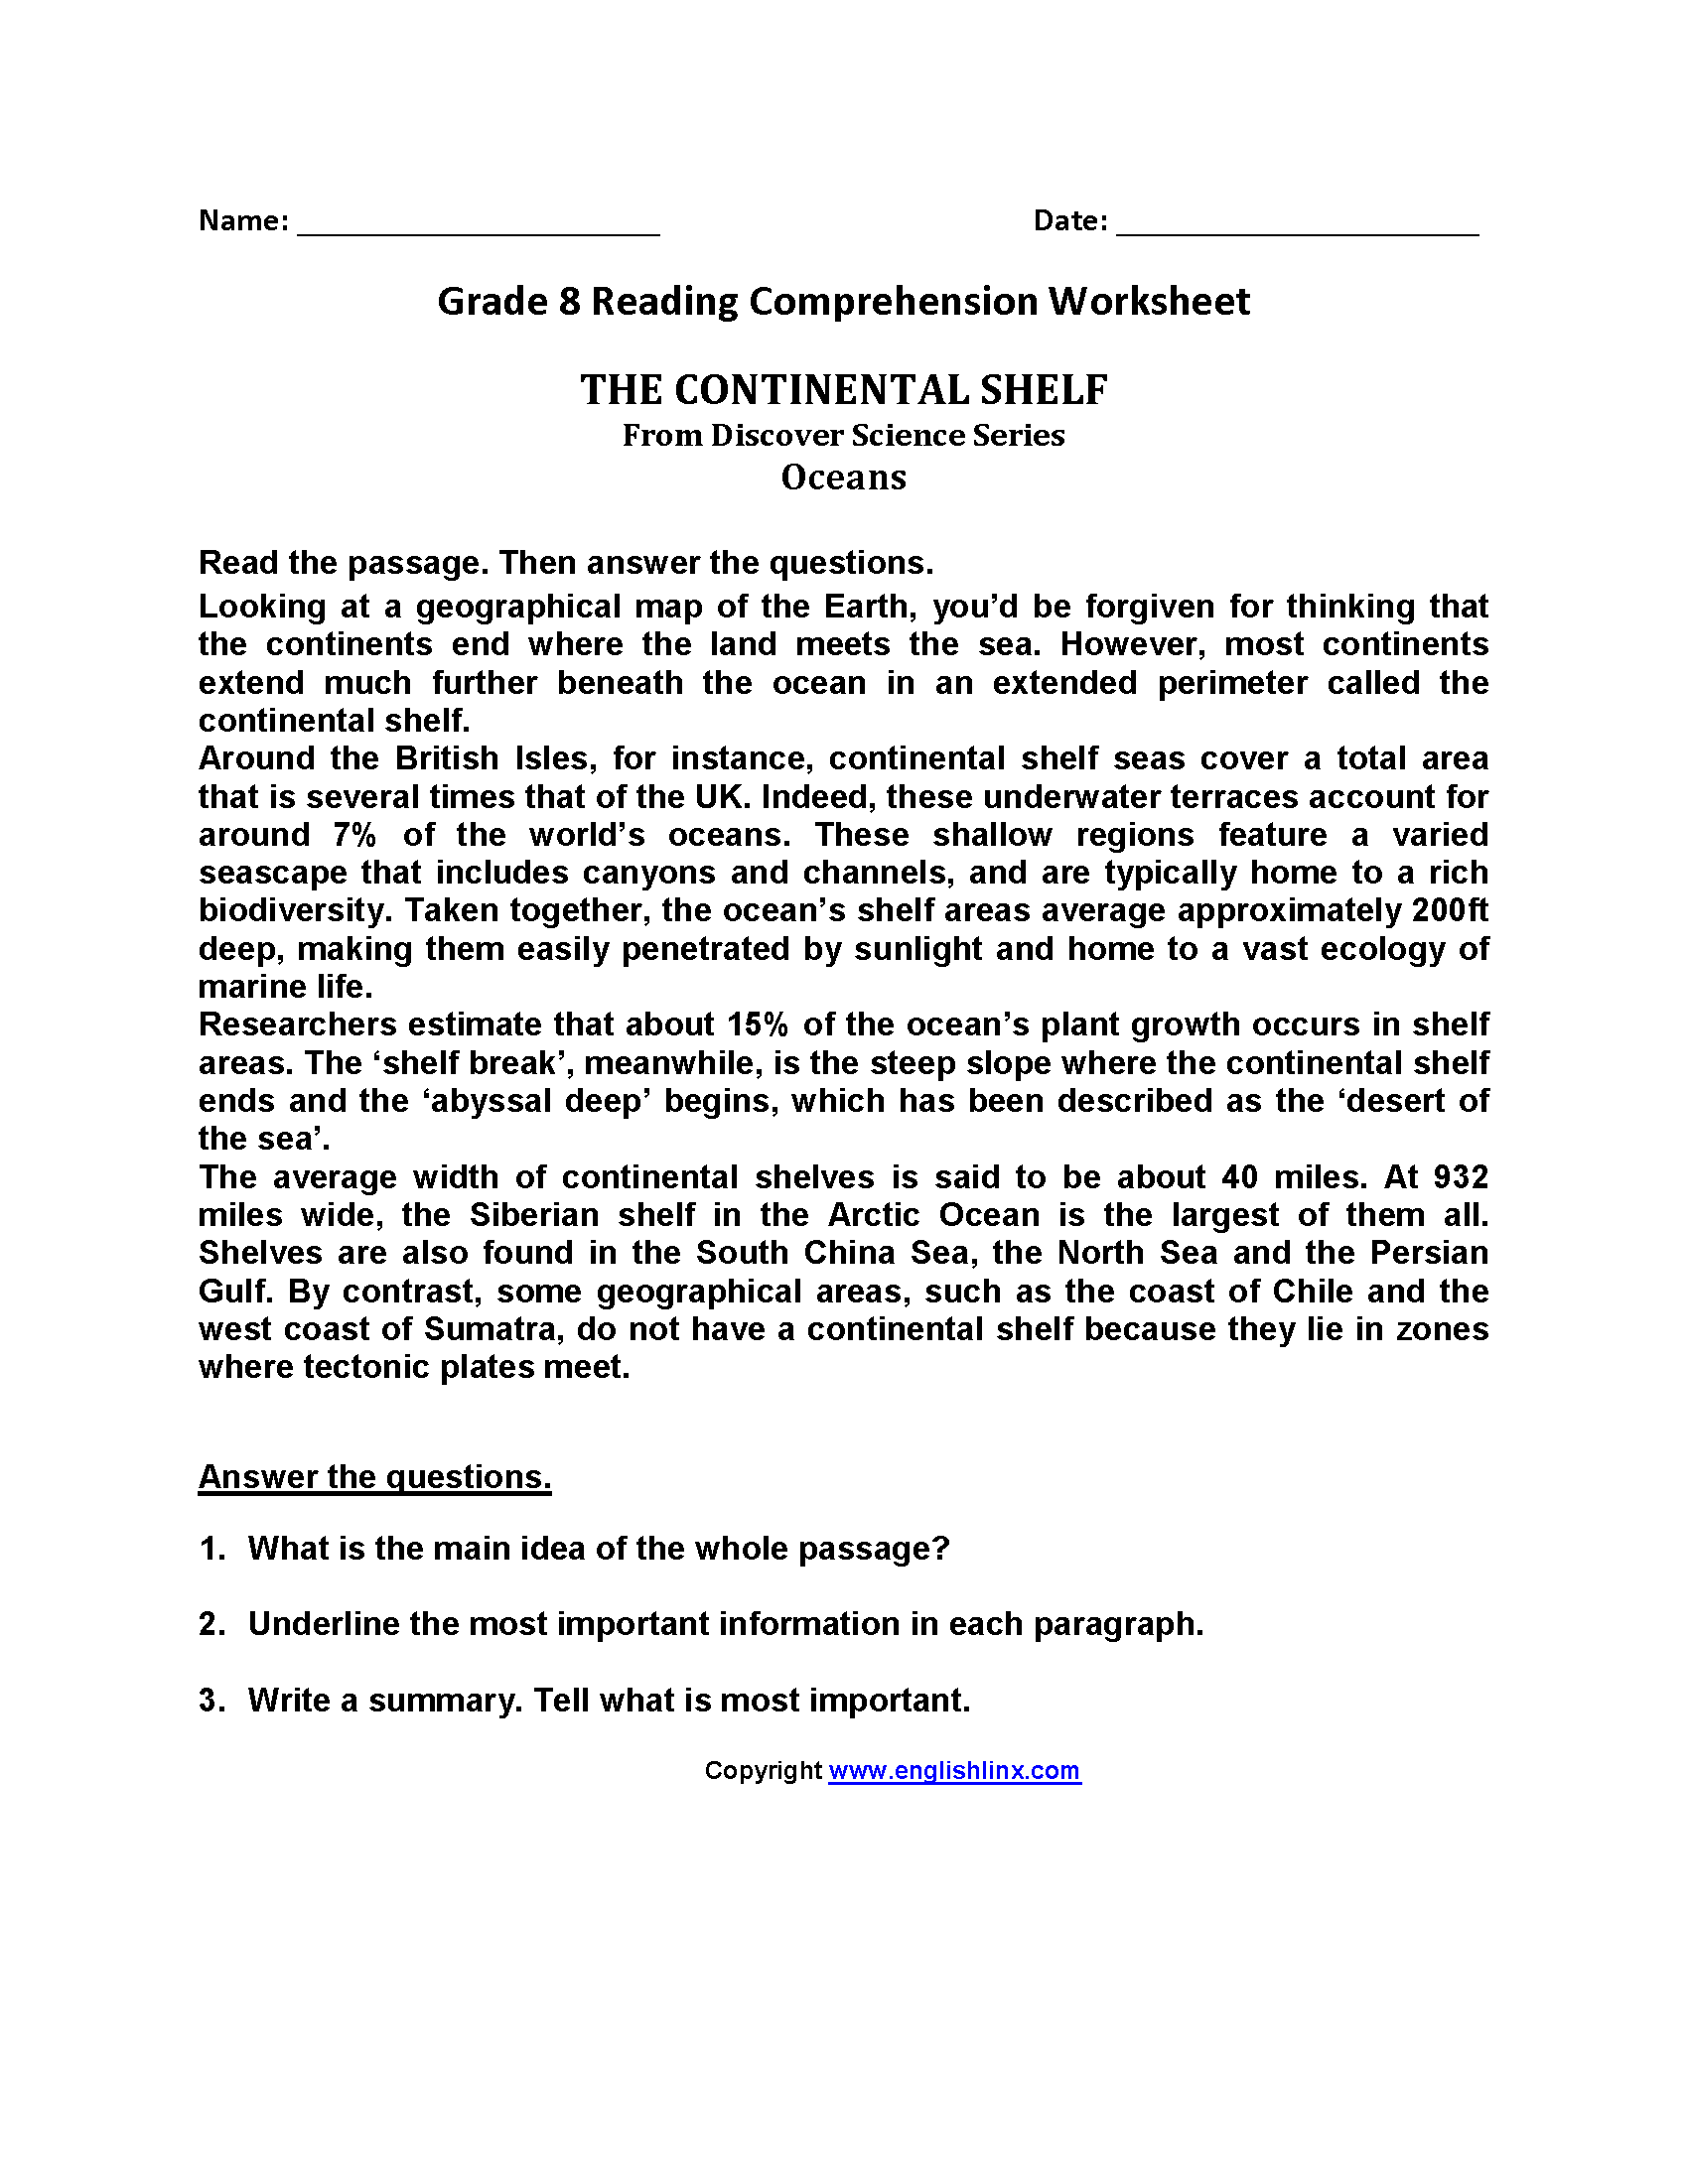 worksheet Grade 8 Comprehension Worksheets Free Printable reading worksheets eighth grade worksheets